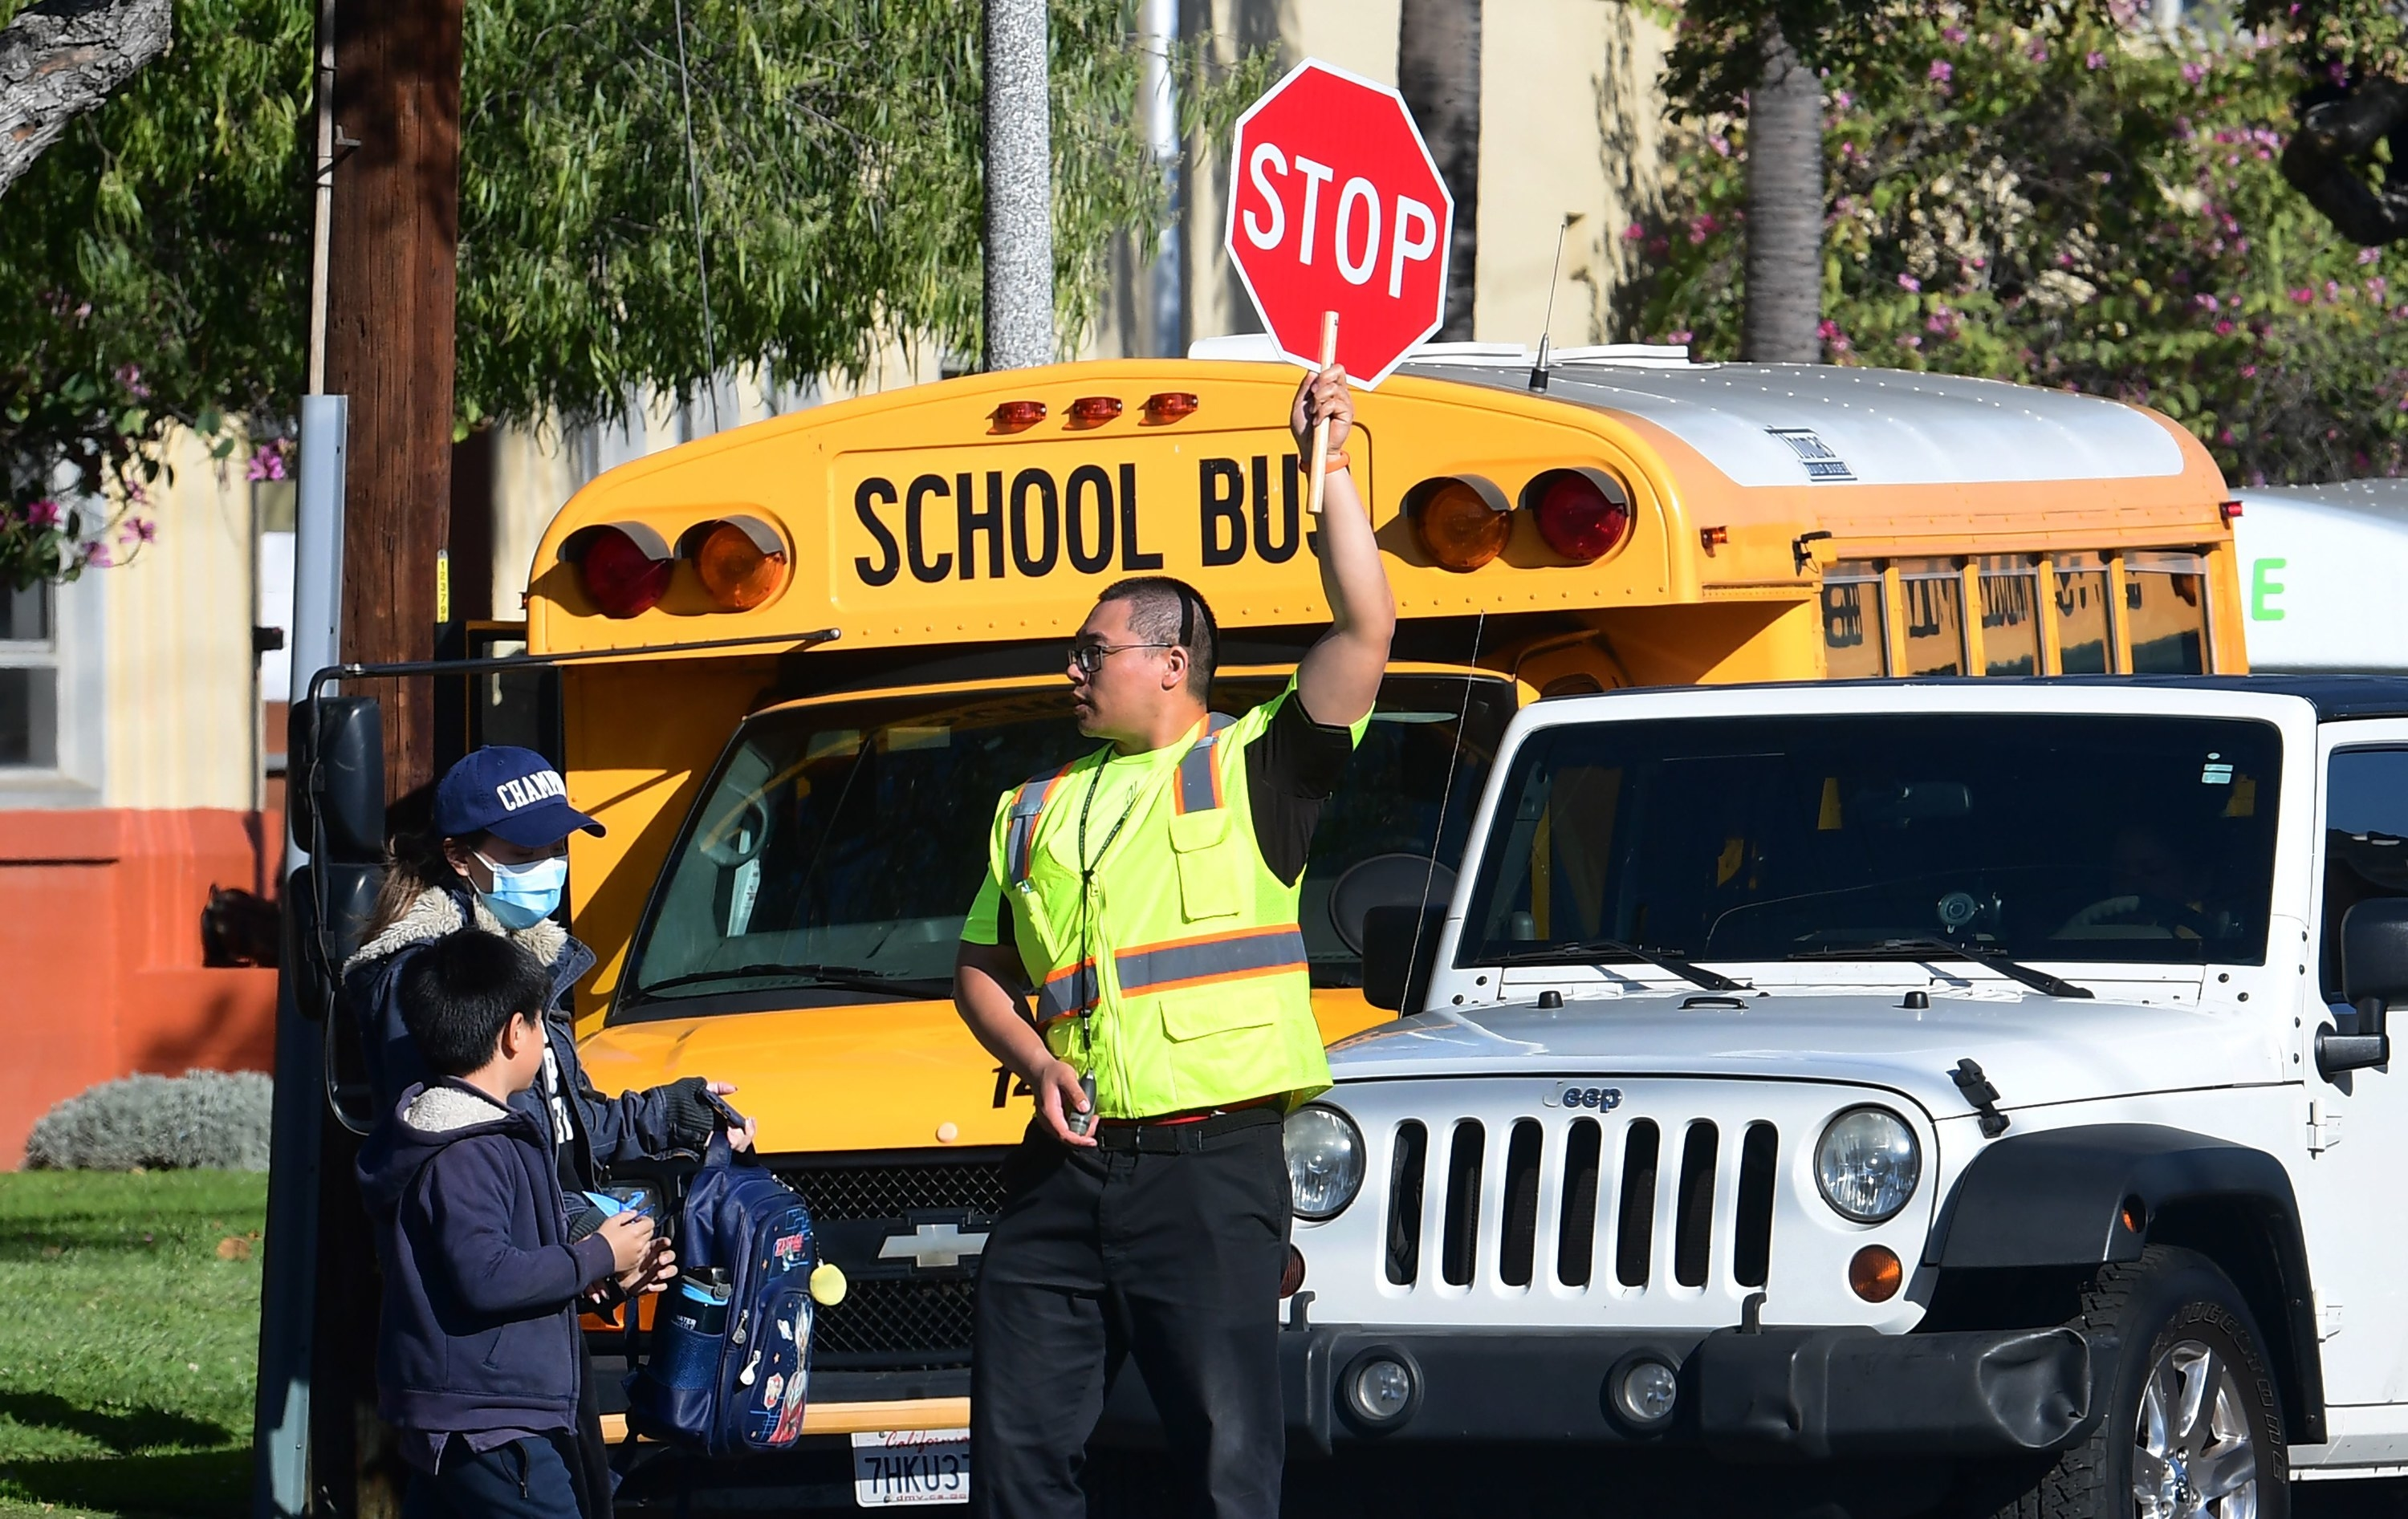 A crossing guard stops traffic in front of a school bus